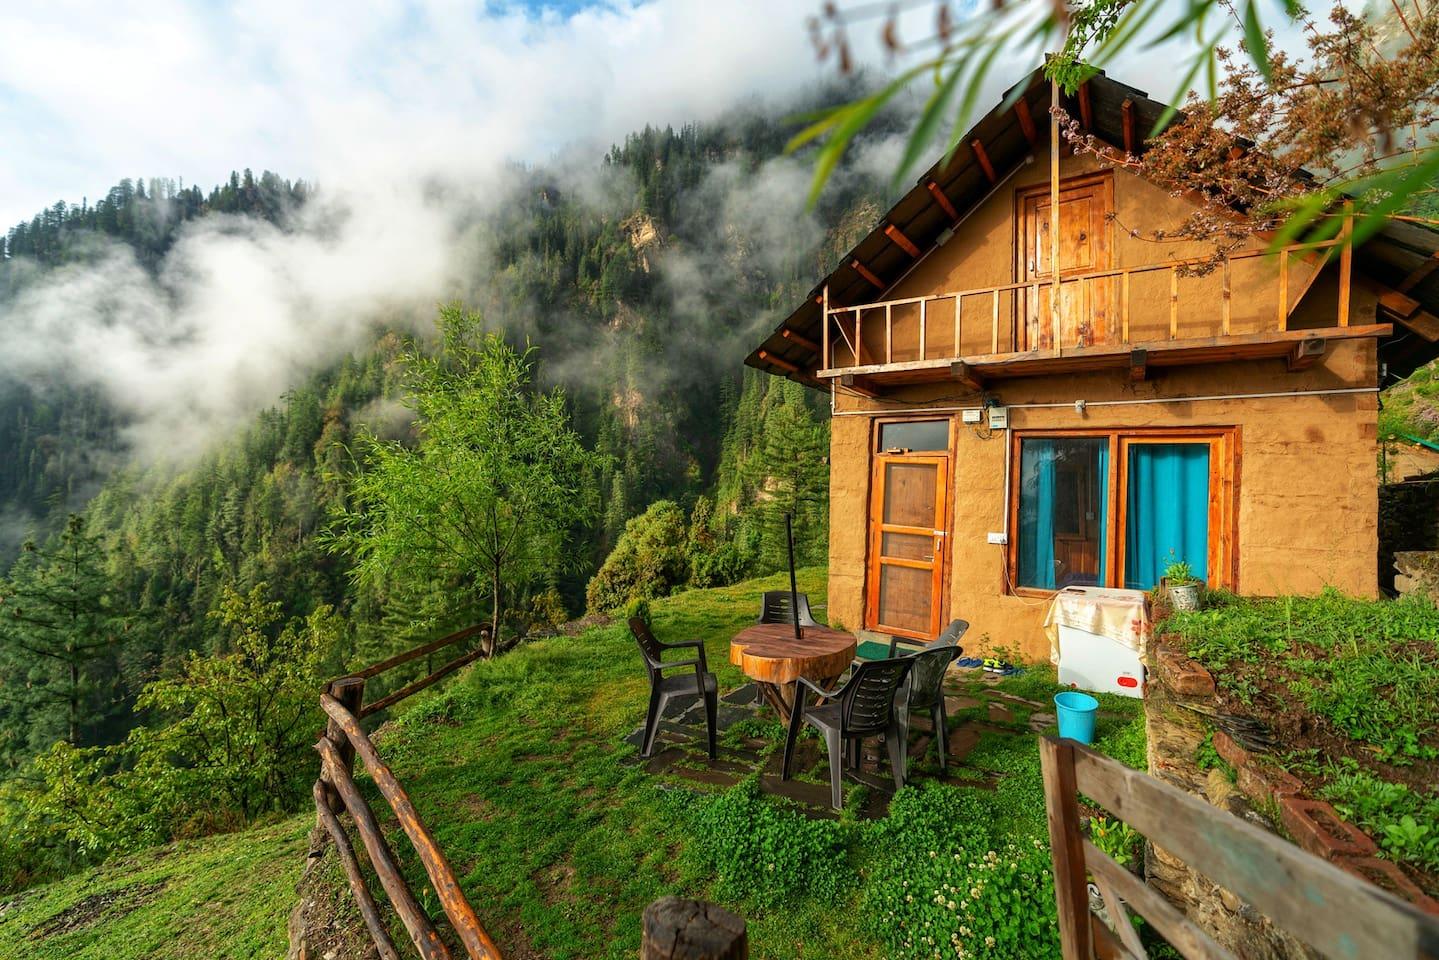 Our mountaintop cottage is surrounded by the forest on all sides. The most successful Airbnb in the town. We've a rating of 4.97, with 87, long, heartfelt reviews. The only property in Himachal with a rating of 4.97, among the ones with 50+ reviews.